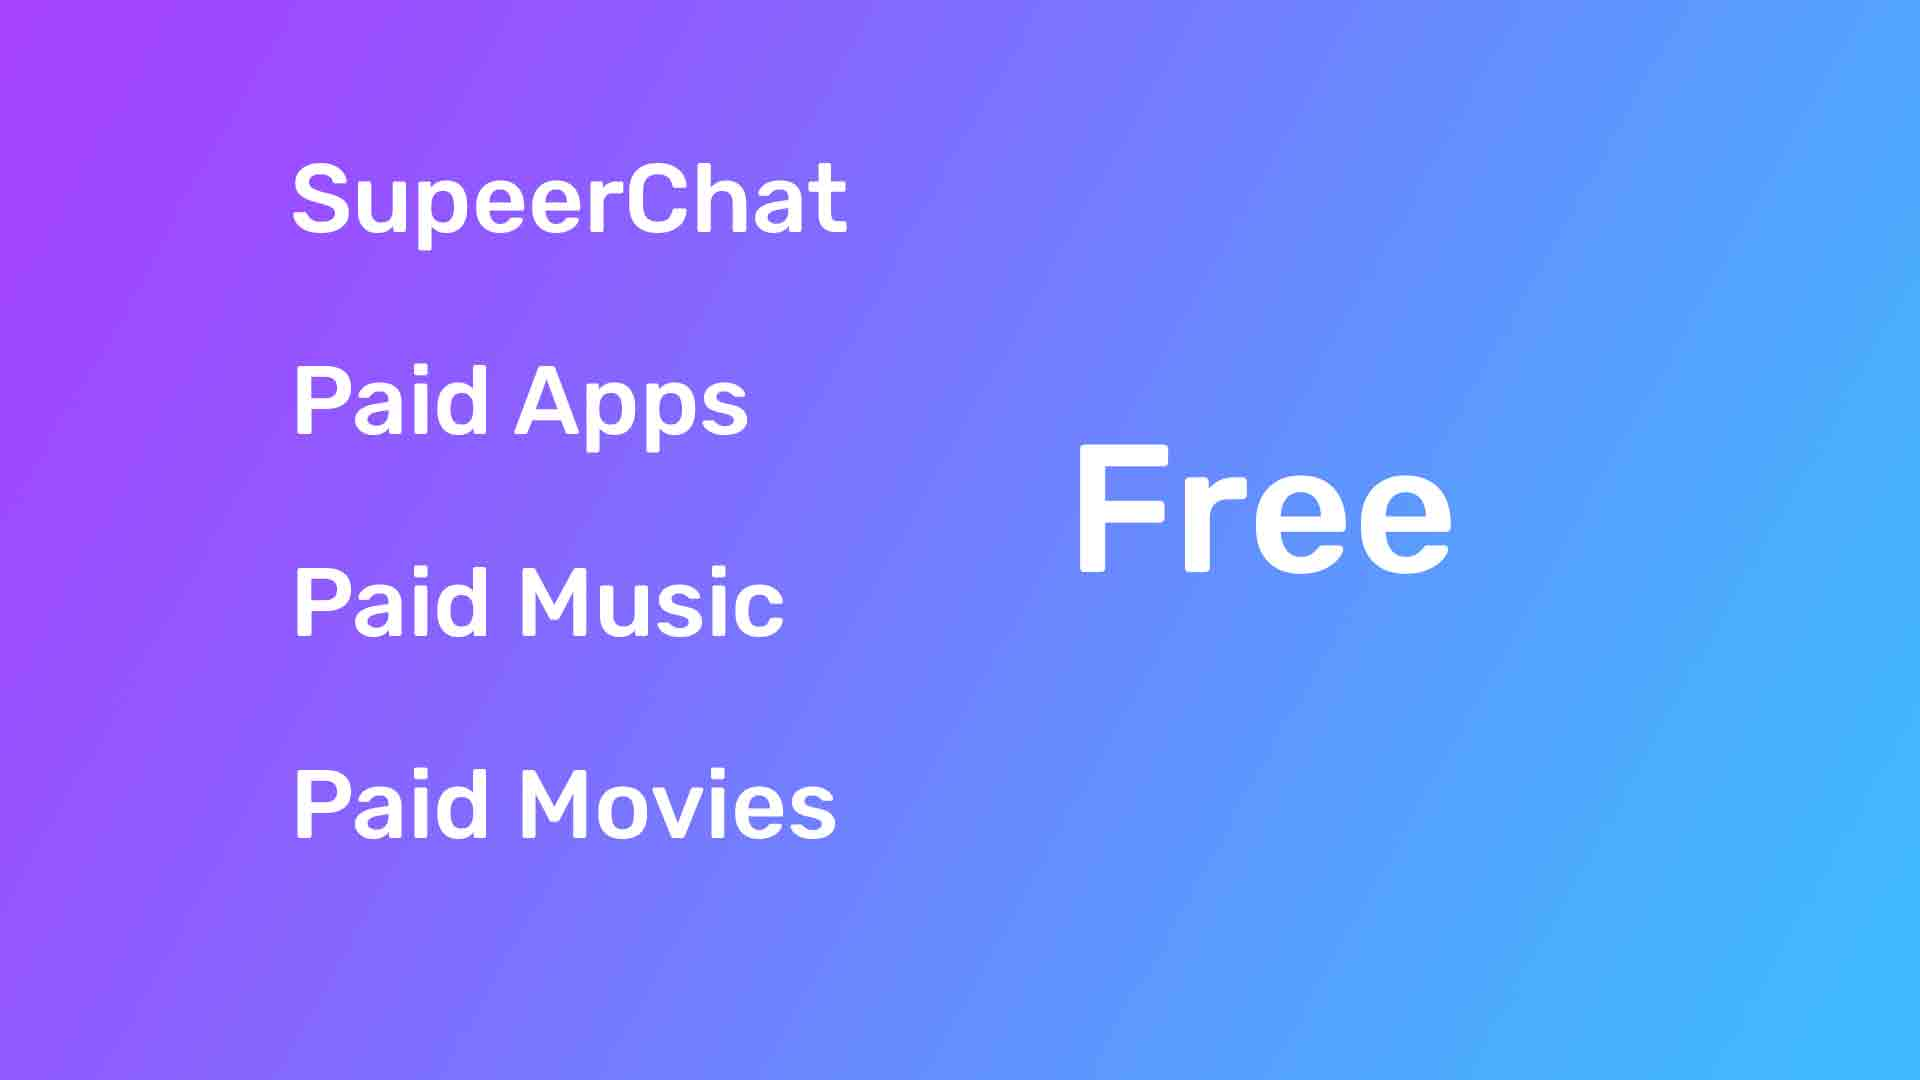 How to buy [FREE] Superchat, Paid apps, Paid books, form the play store. | paid apps | free superchat | paid books.